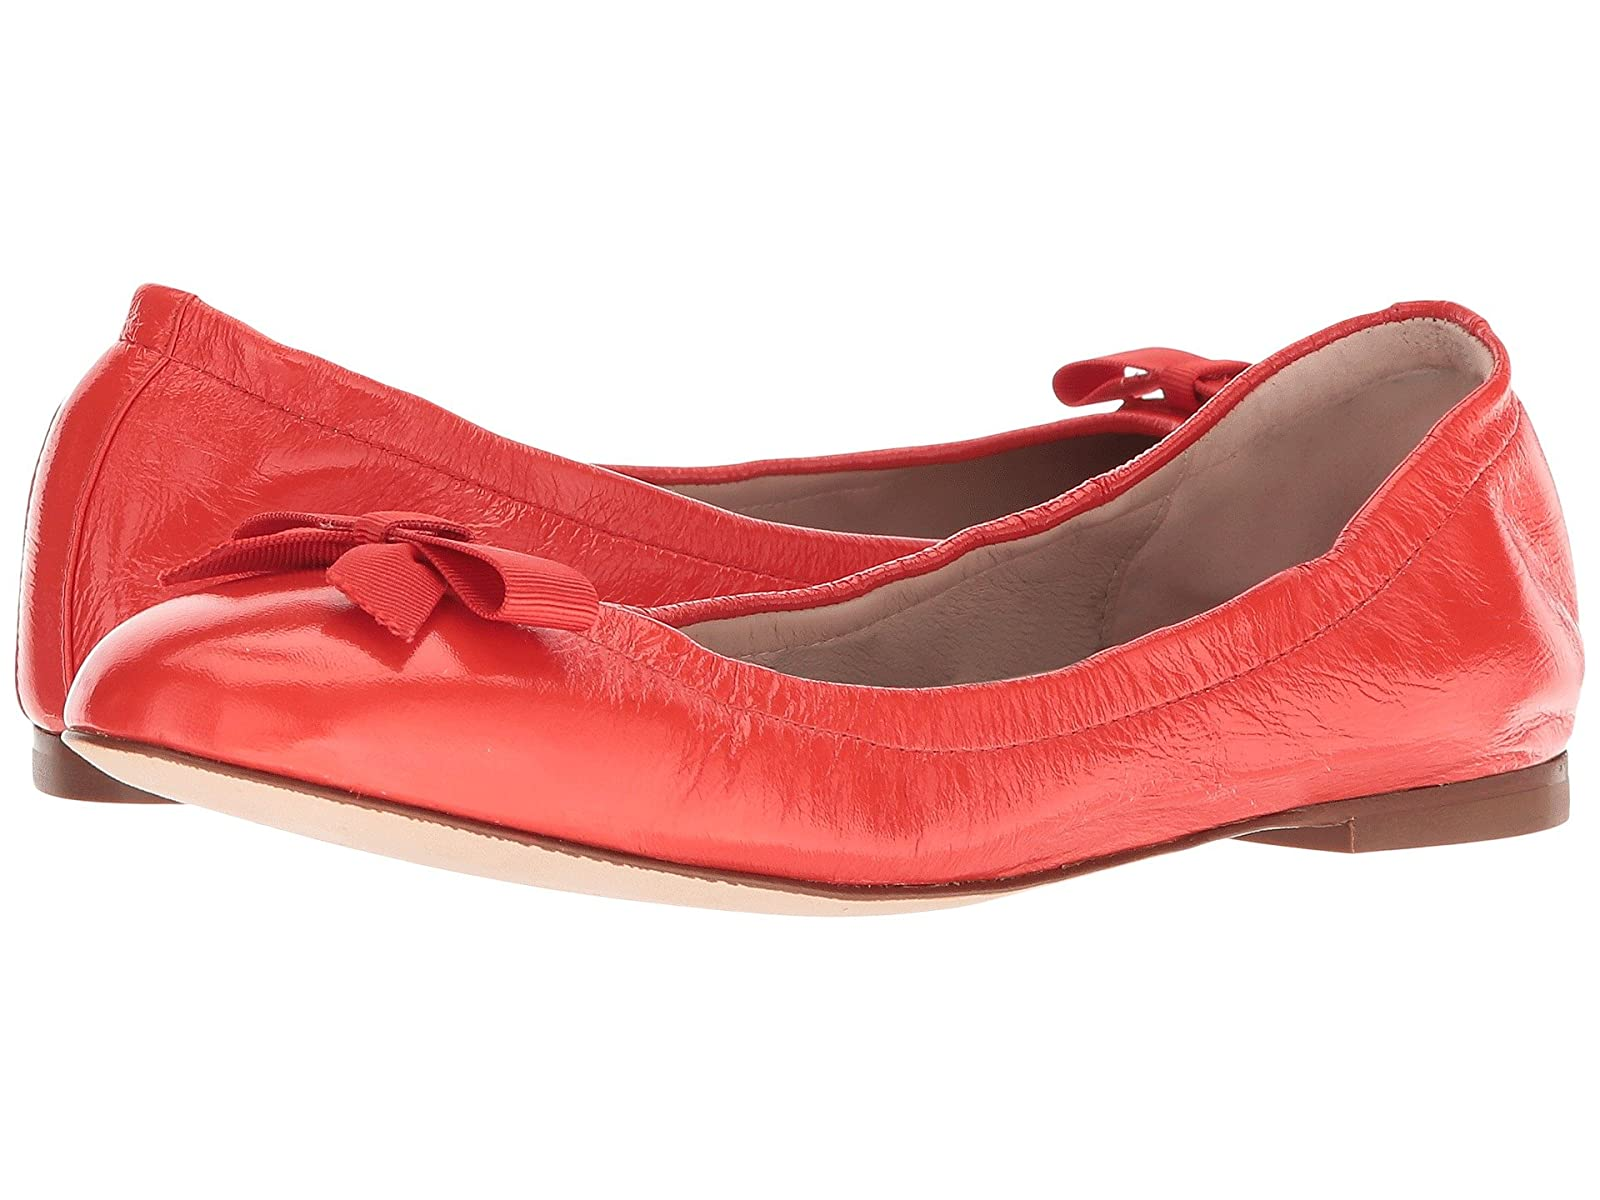 Stuart Weitzman RavenAtmospheric grades have affordable shoes